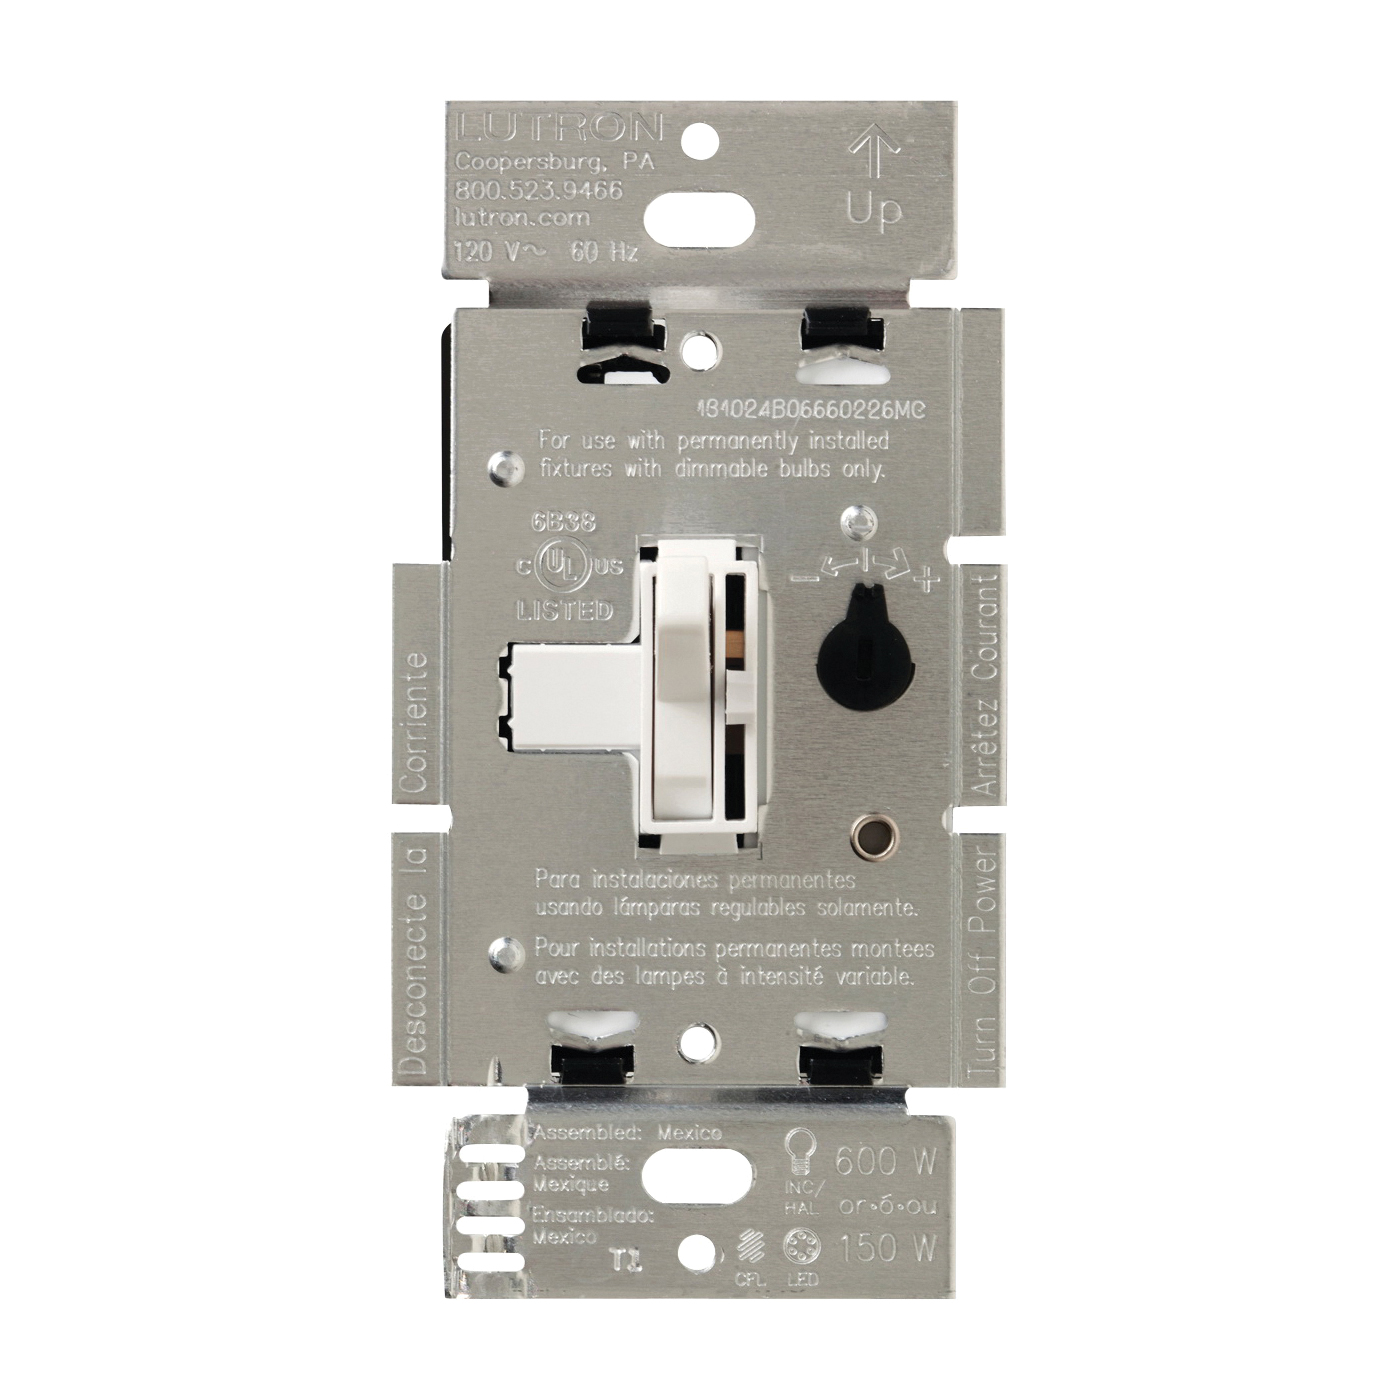 Picture of Lutron Ariadni TGCL-153PH-WH Dimmer, 1.25 A, 120 V, 150 W, CFL, Halogen, Incandescent, LED Lamp, 3-Way, White